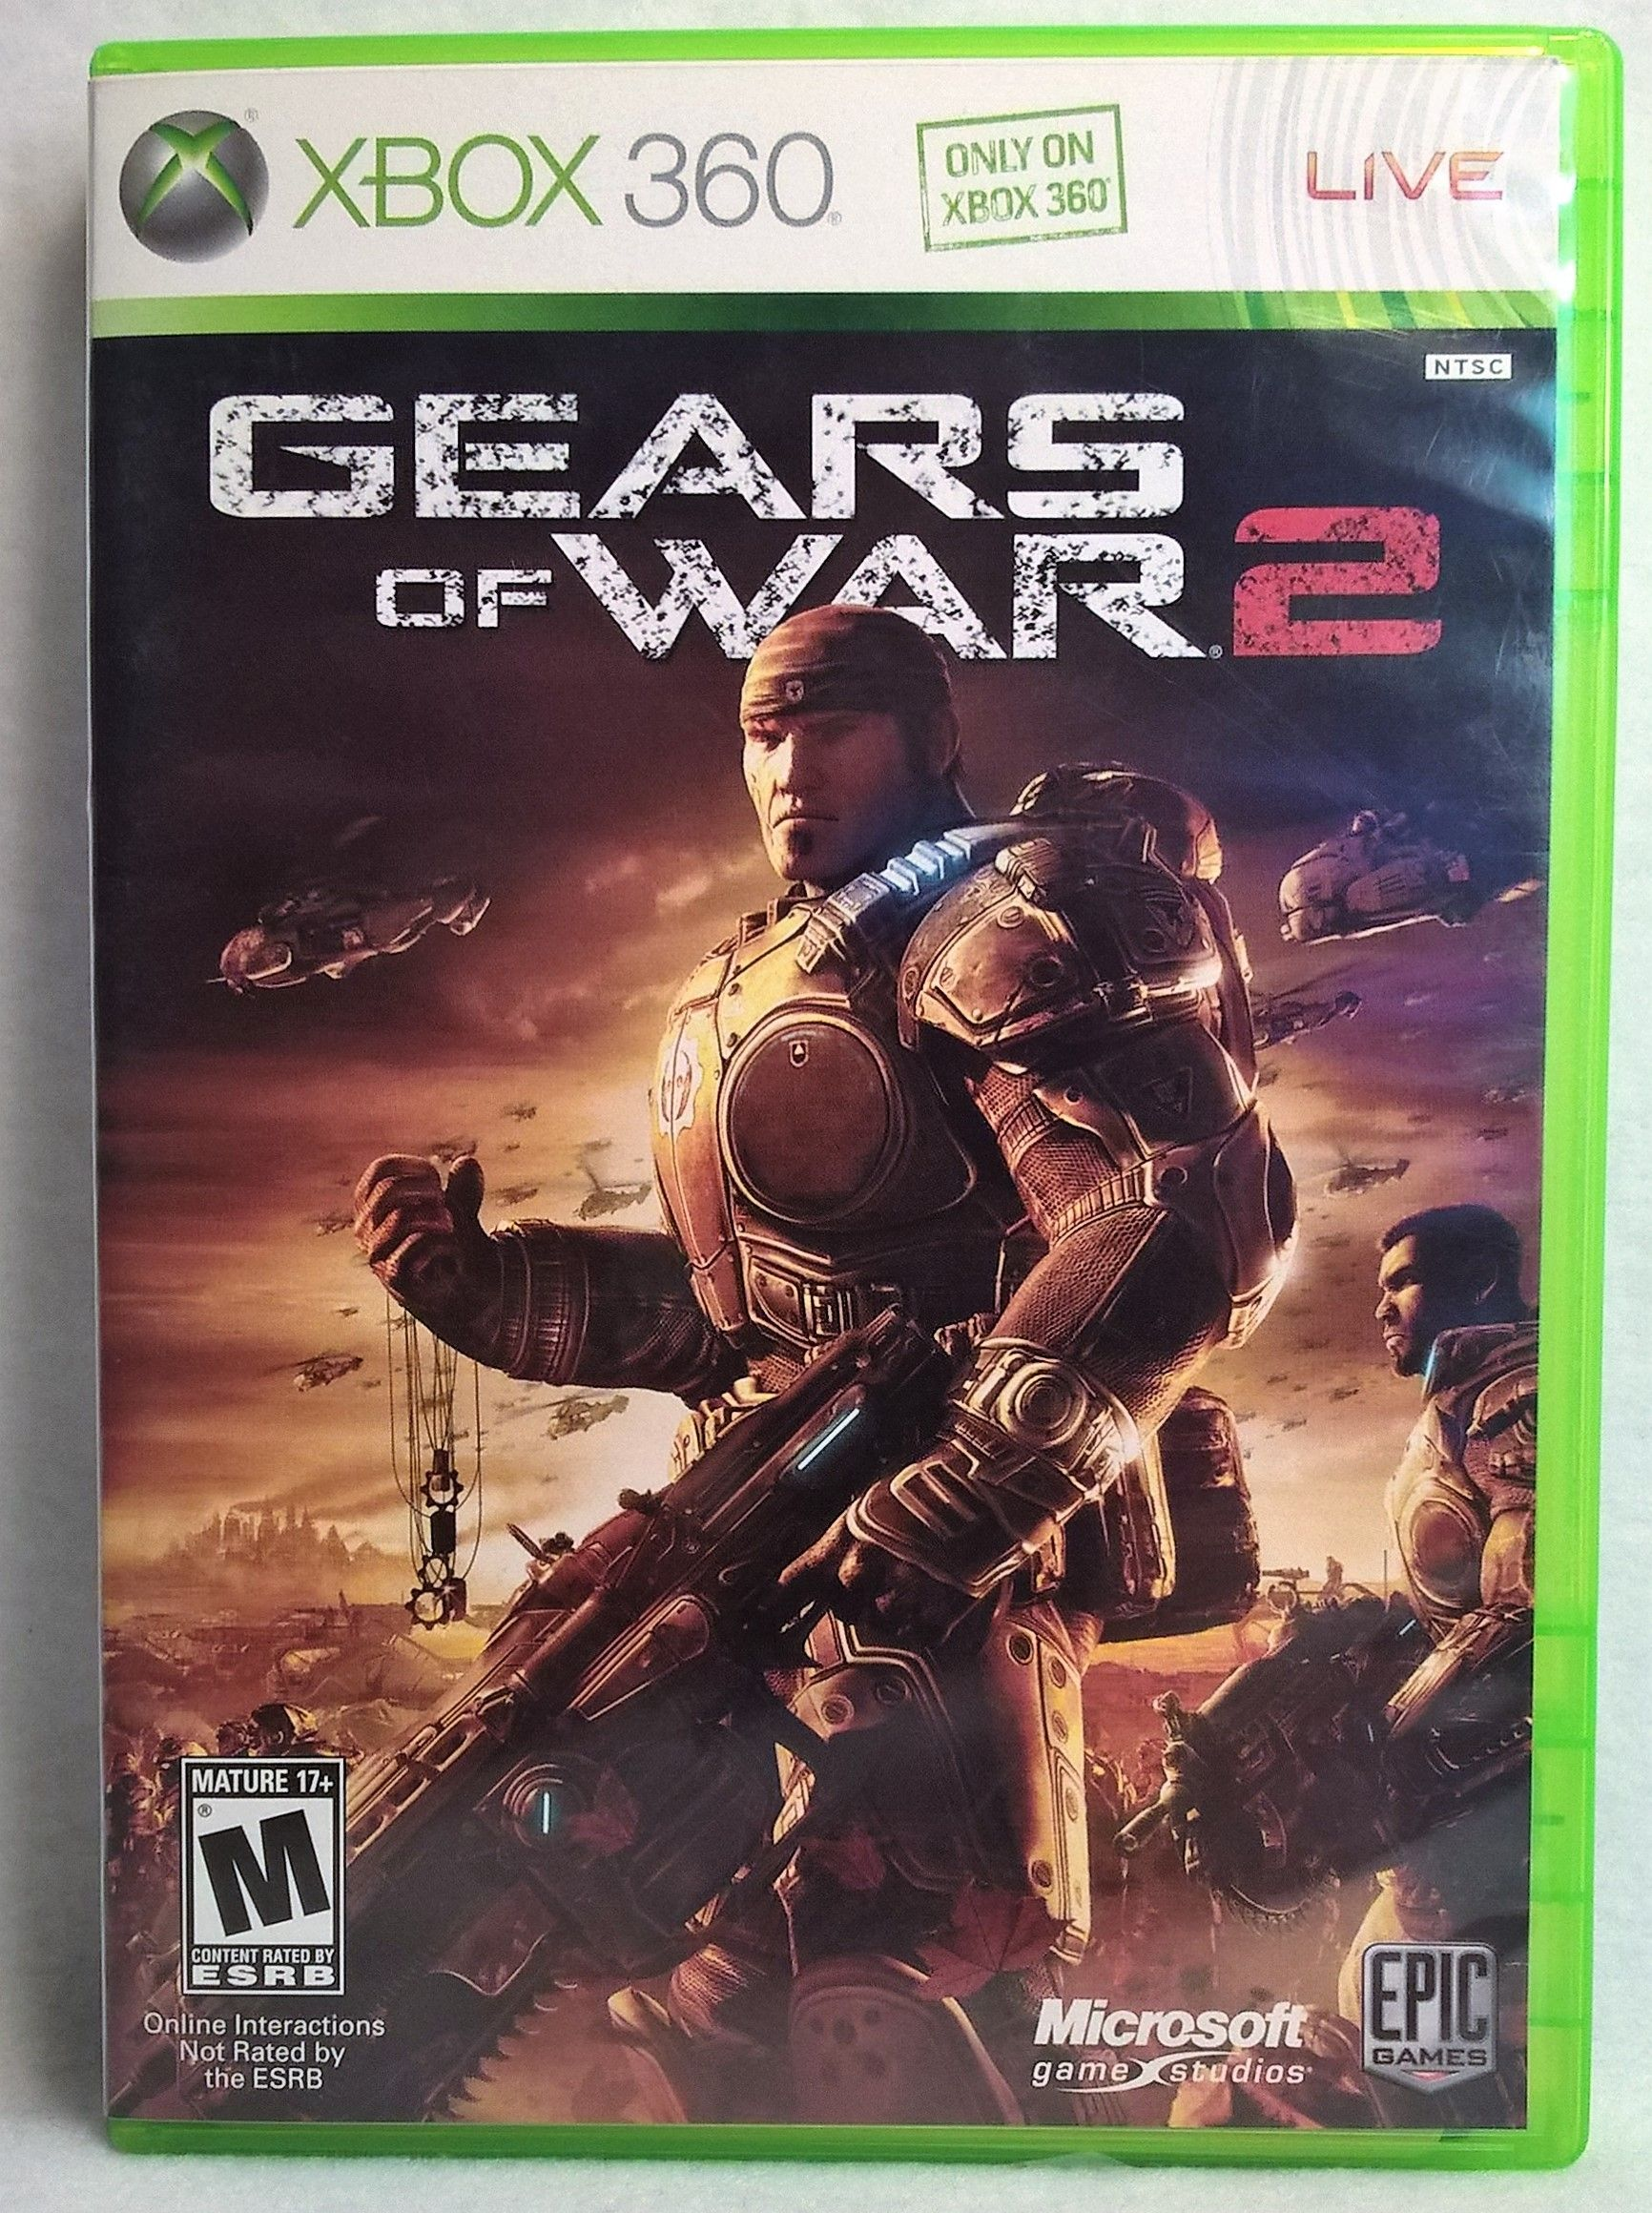 Xbox 360 Gears Of War 2 Gears Of War Gears Of War 2 Xbox 360 Games